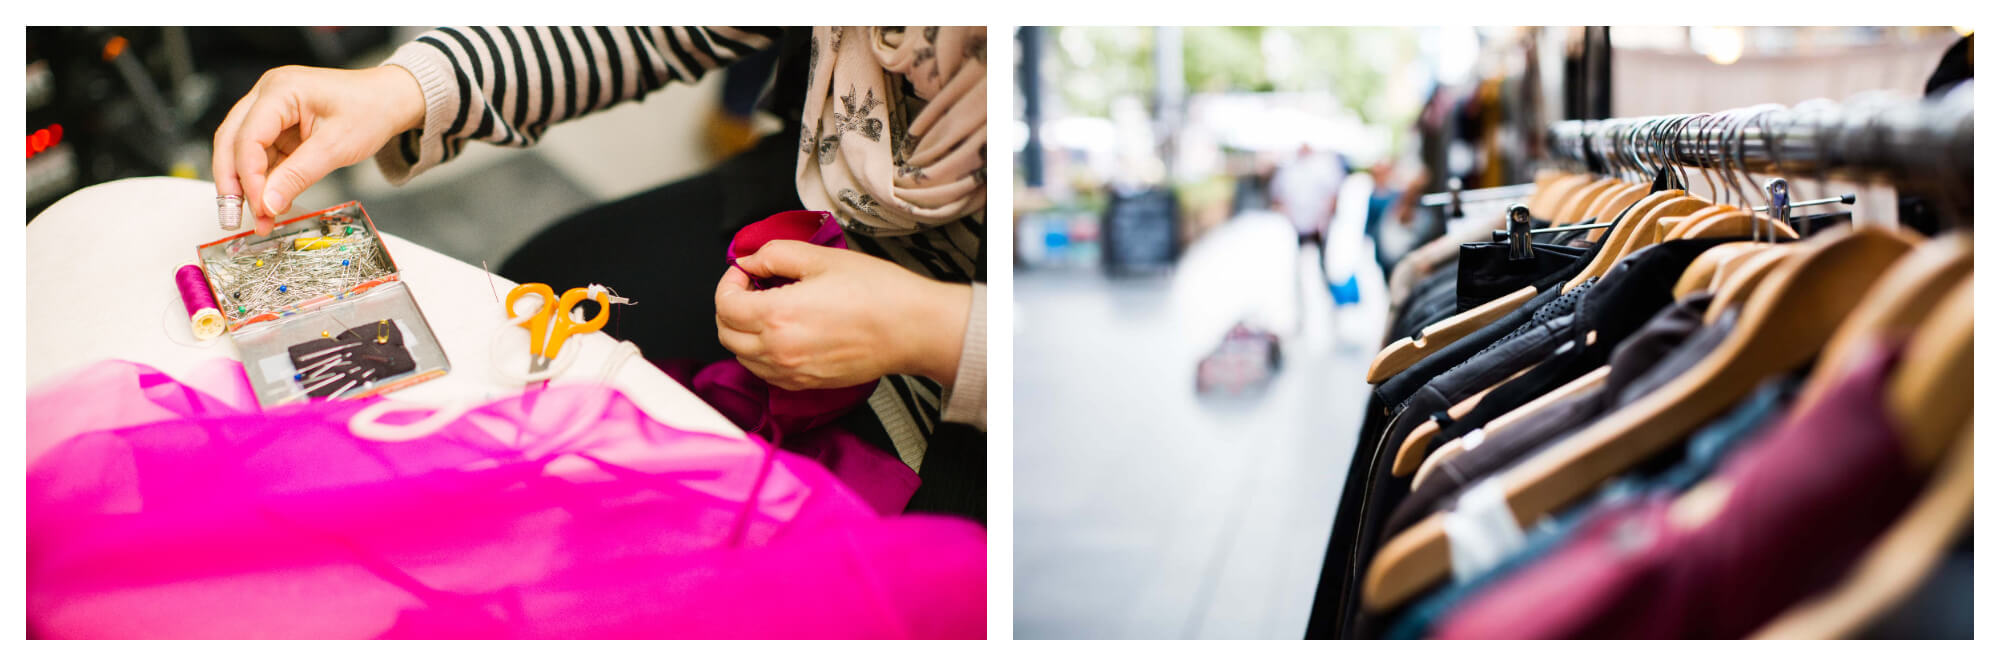 Left: A seamstress, whose face is not visible, sews some fuschia coloured chiffon material, with scissors sat in front of her, and a box of needles and a spool of thread.   Right: a rack of second hand clothes at an outdoor flea market.